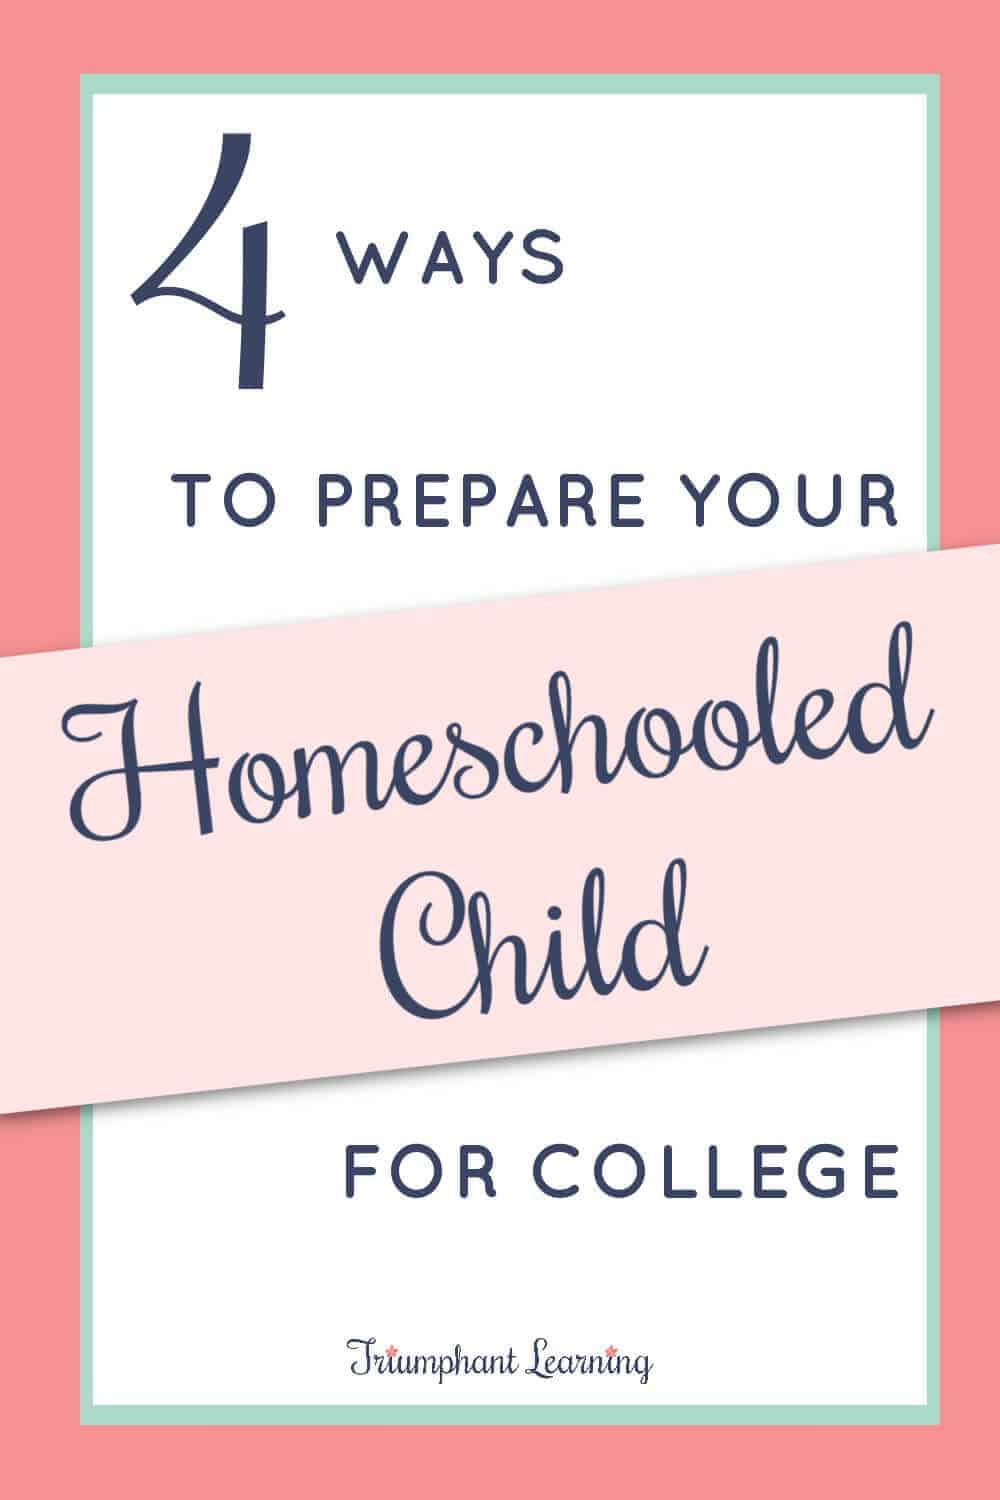 Is your homeschooled child ready for college? Learn the four skills every student should acquire to be successful in their future career. via @TriLearning